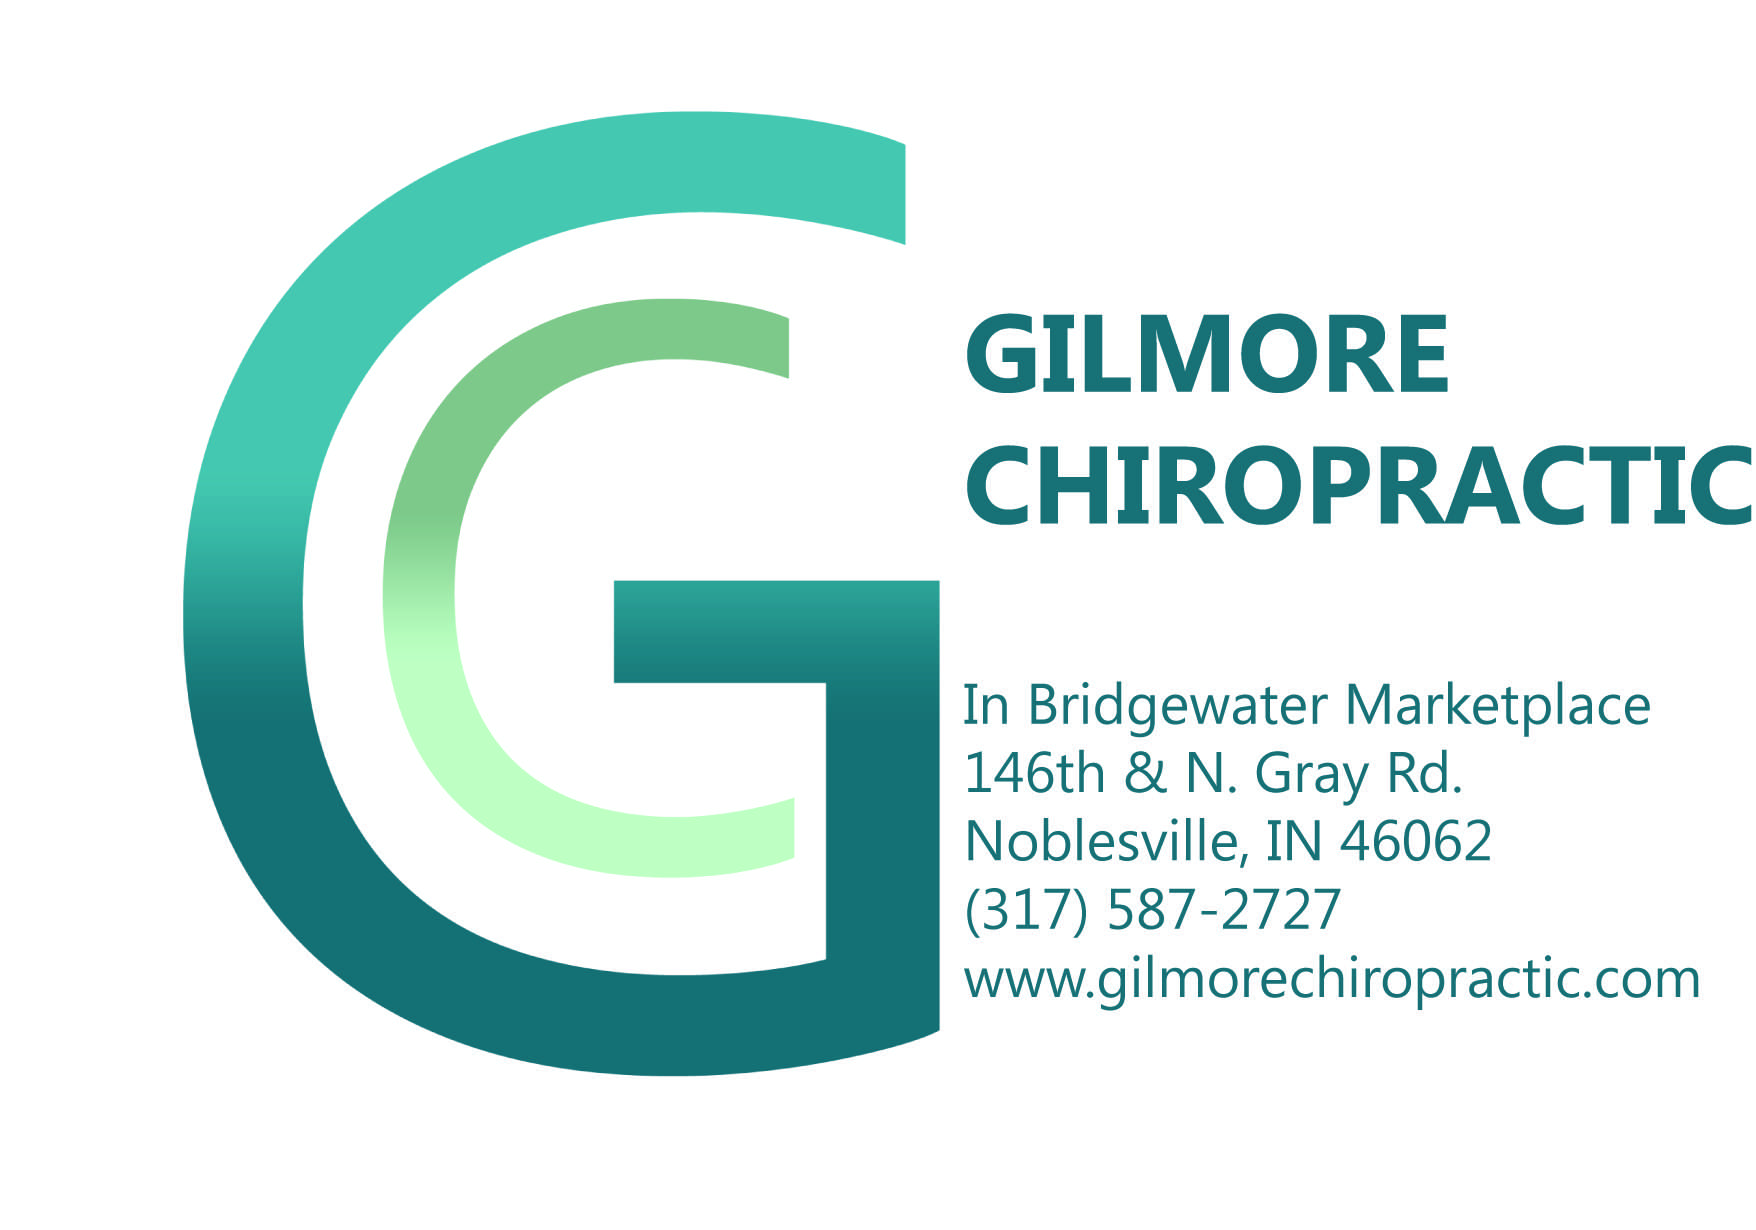 Gilmore Chiropractic